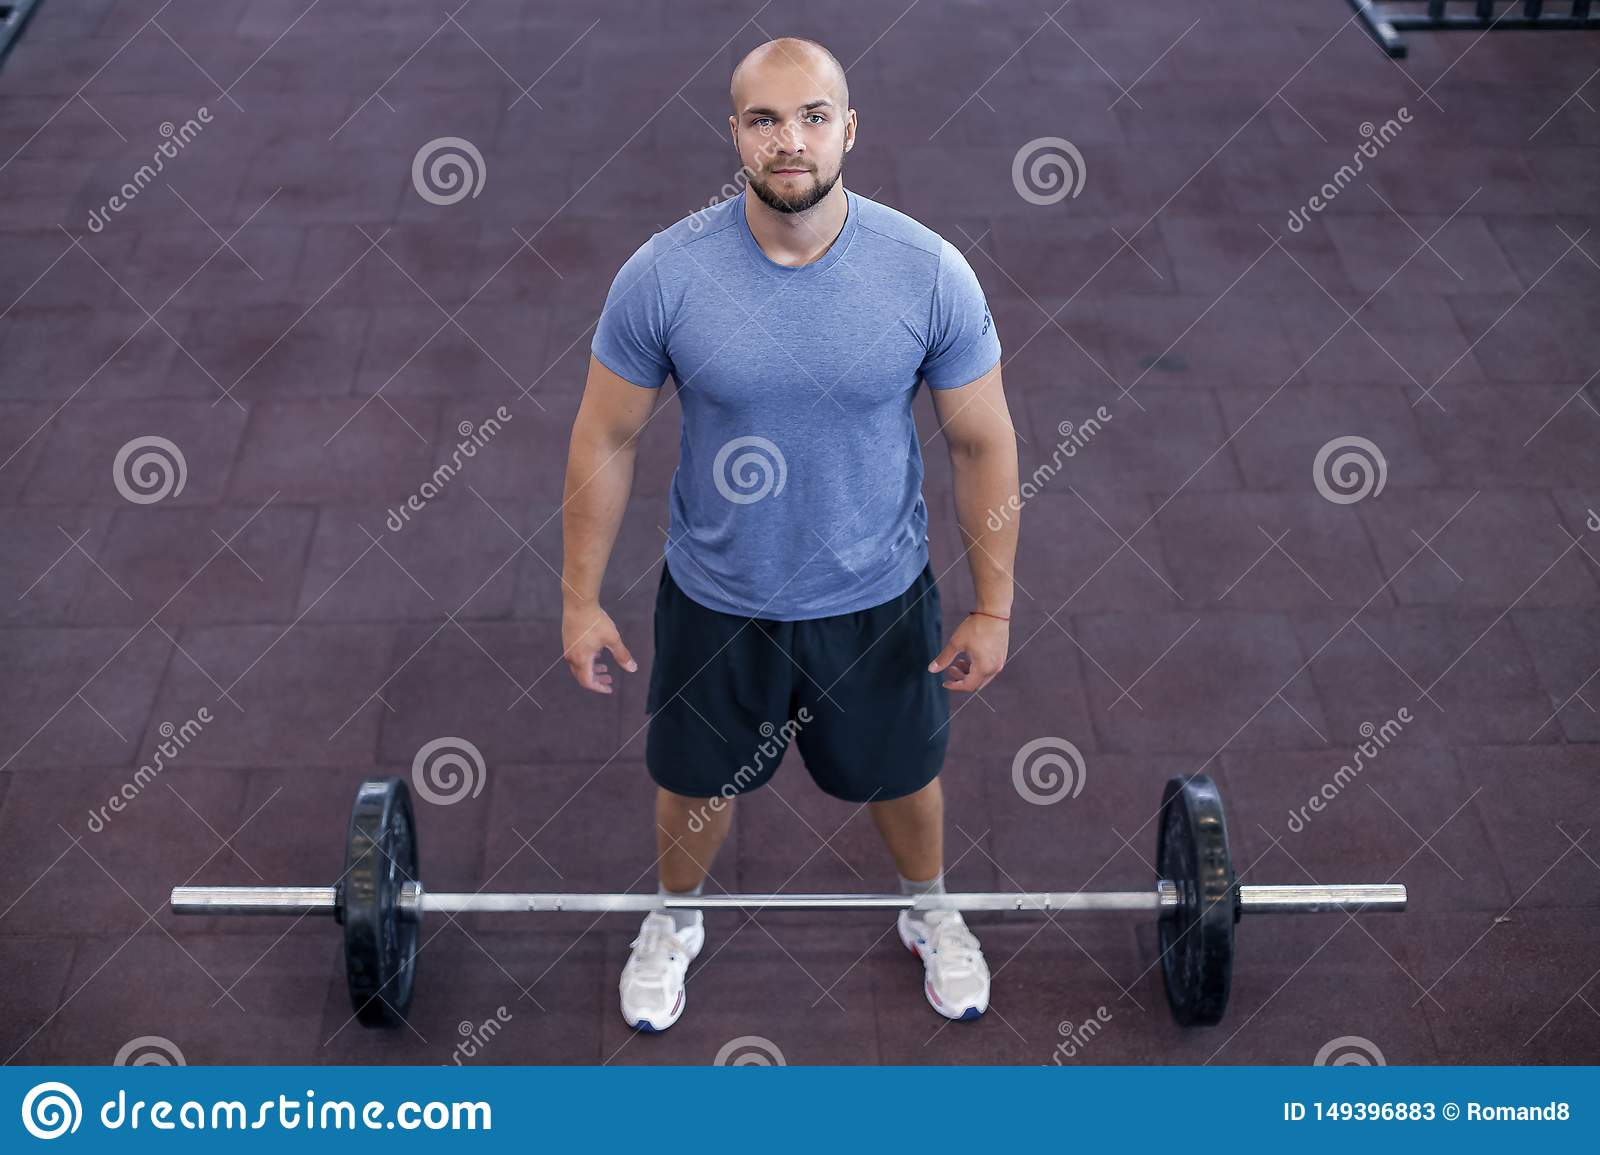 Top view of a athletic man works out at the gym with a barbell